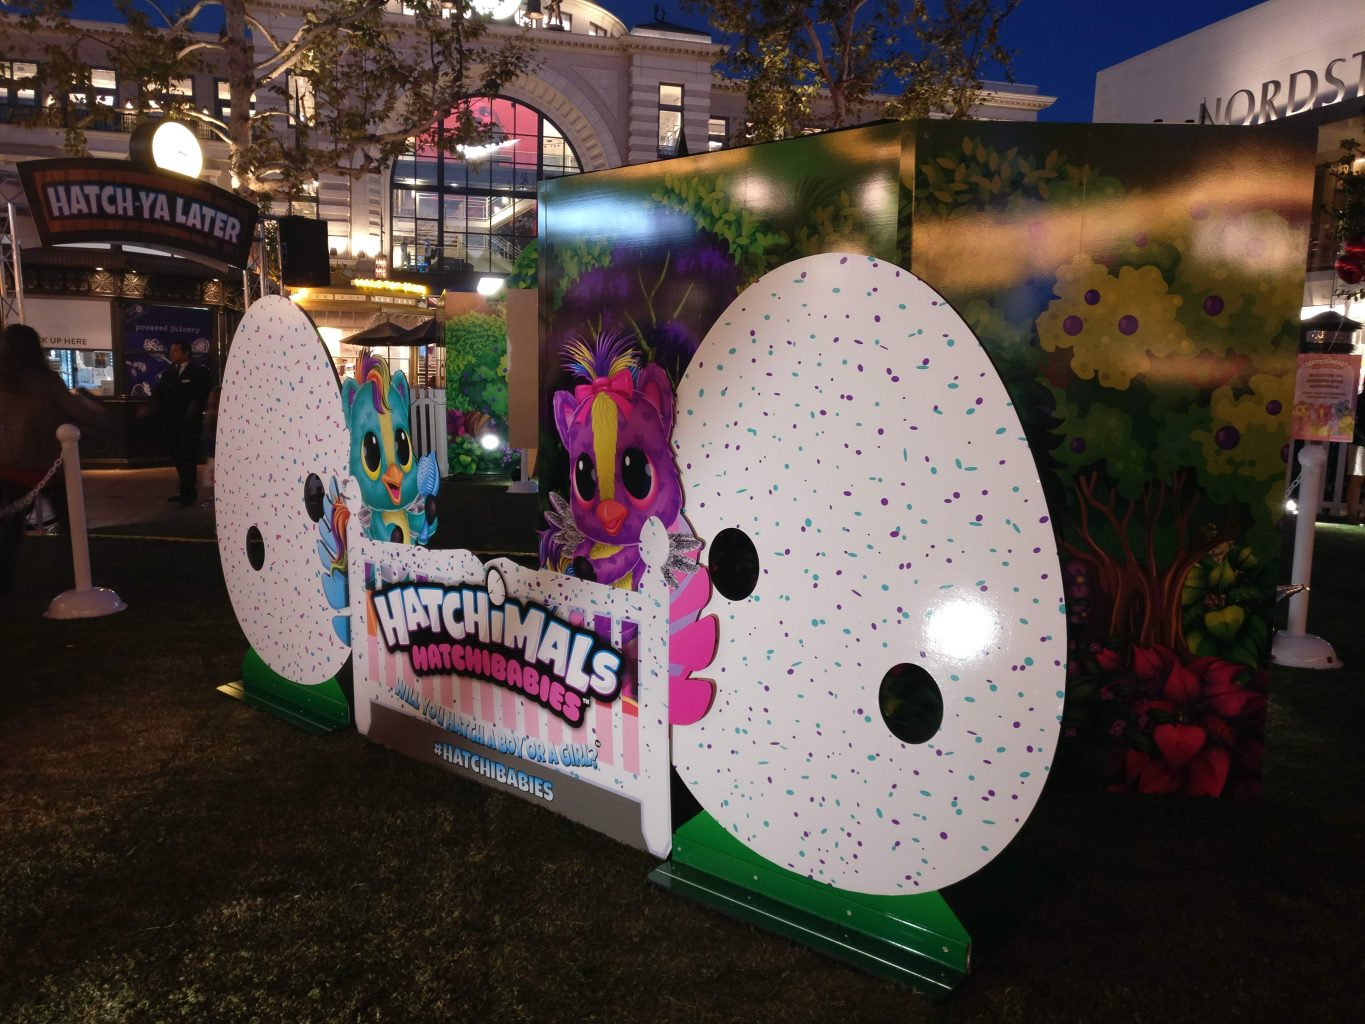 Hatchimals Hatchibabies photo opportunity the grove